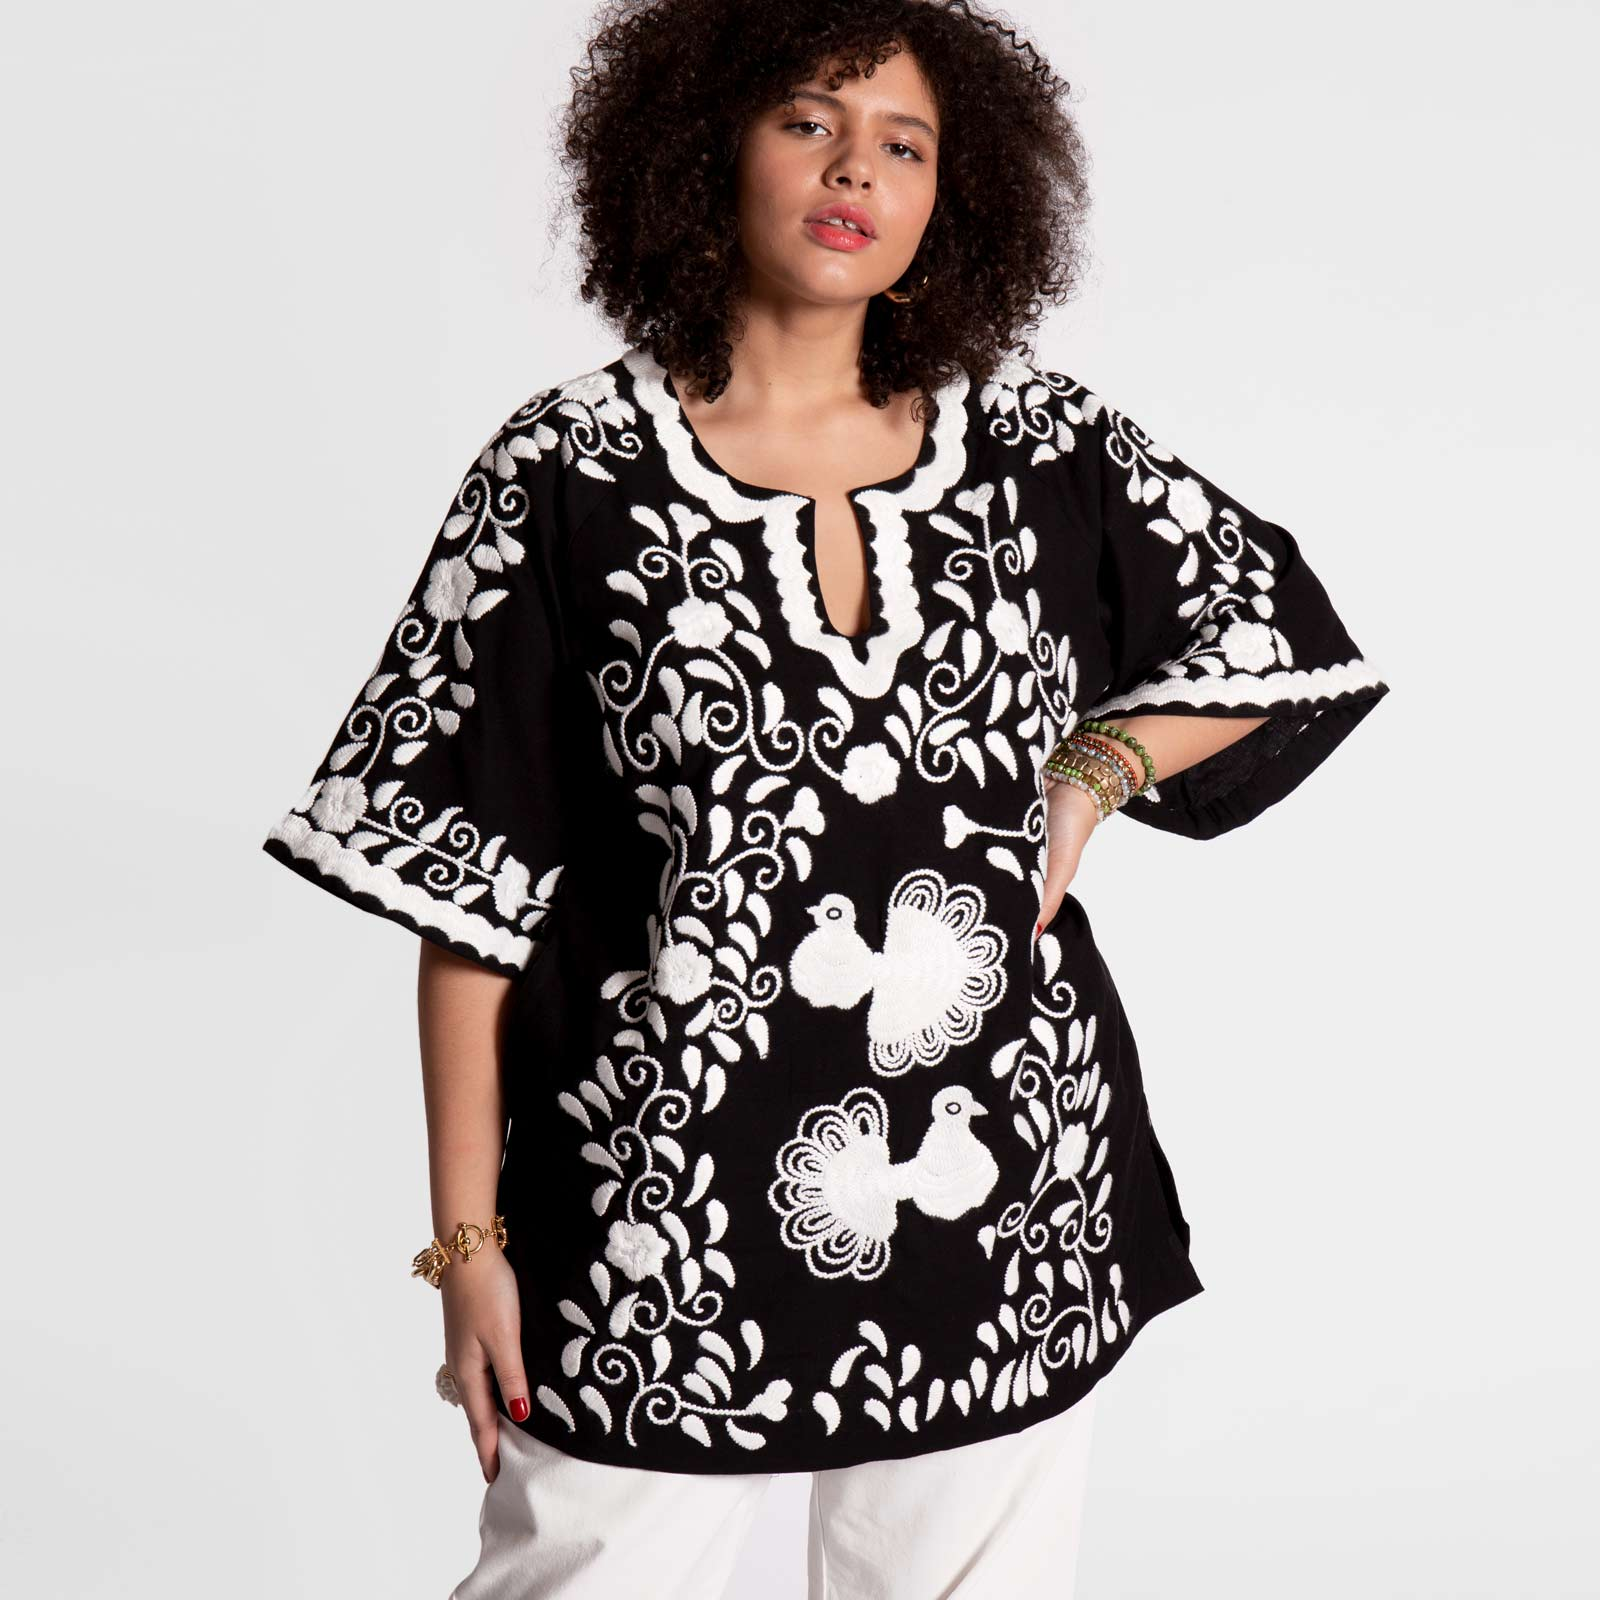 Peacock Tunic Black White - Frances Valentine